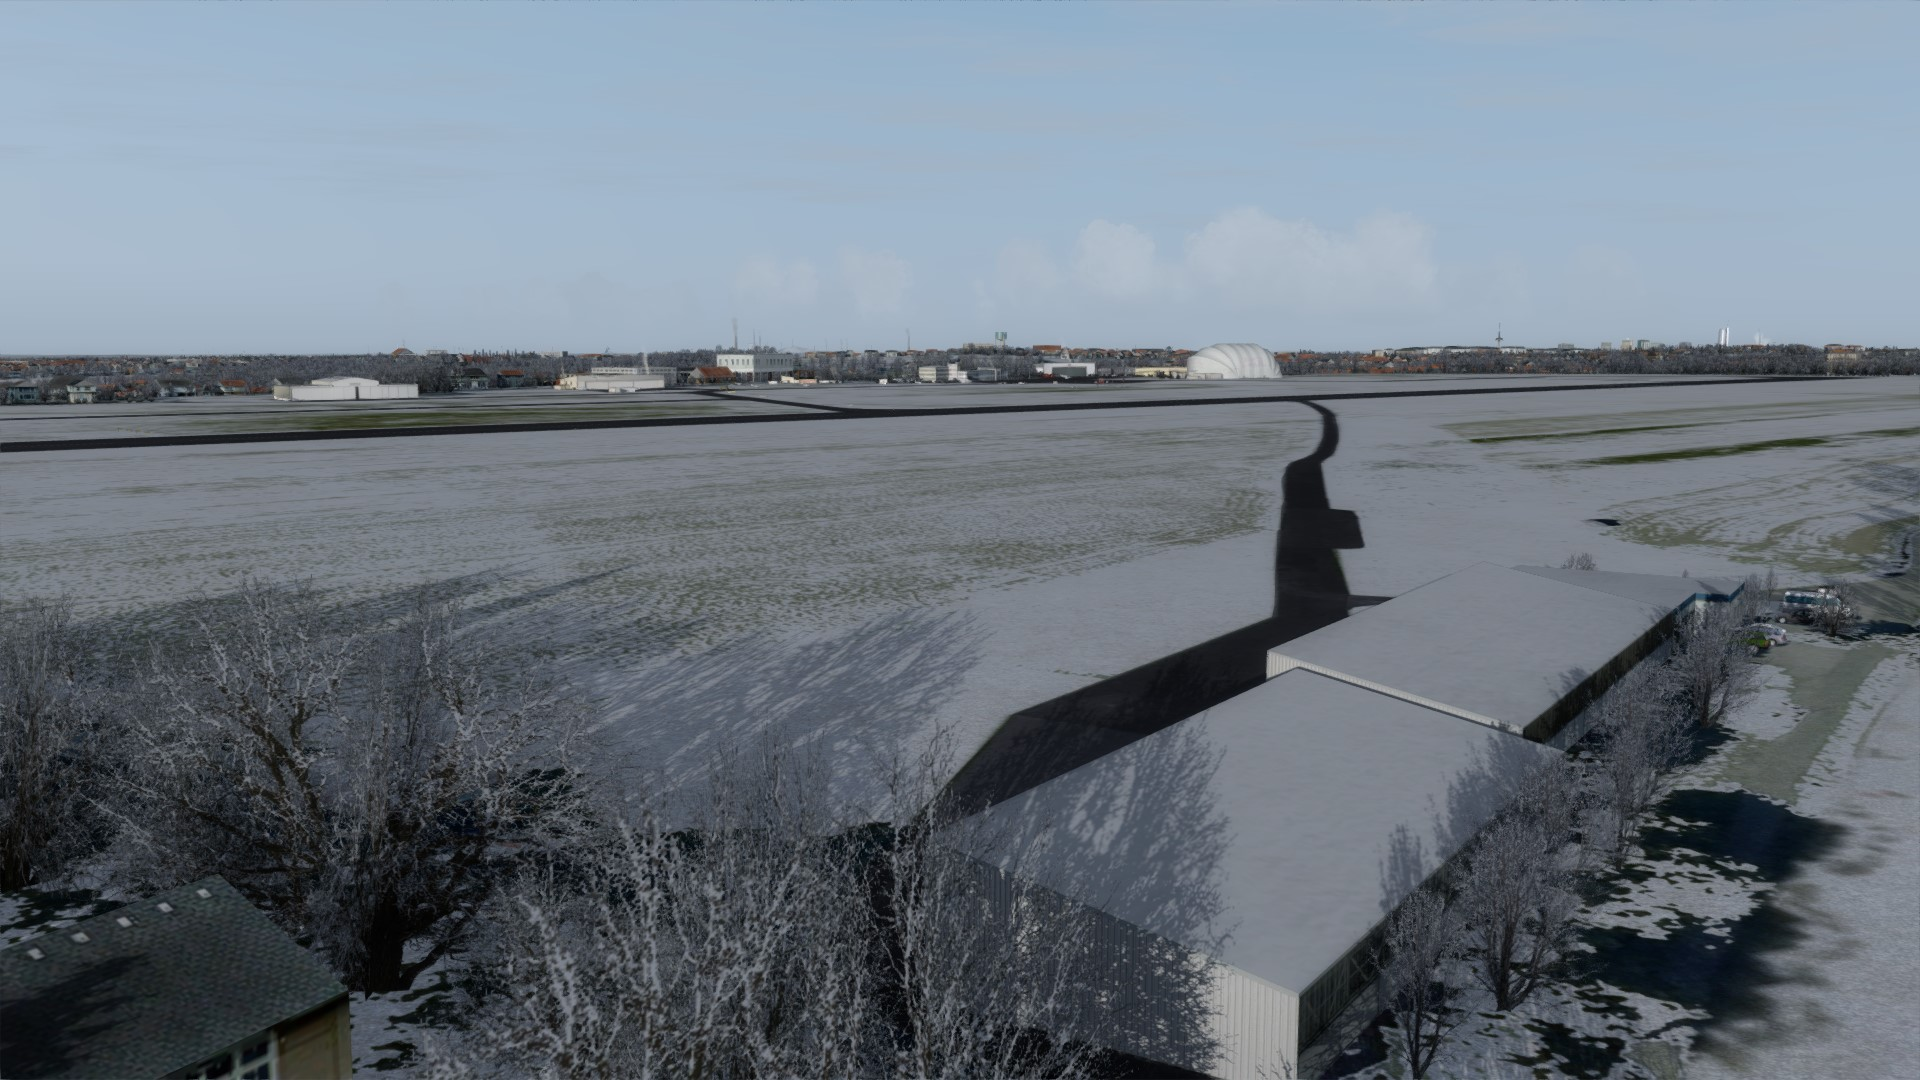 p3dv4_muelheim_winter_3.jpg